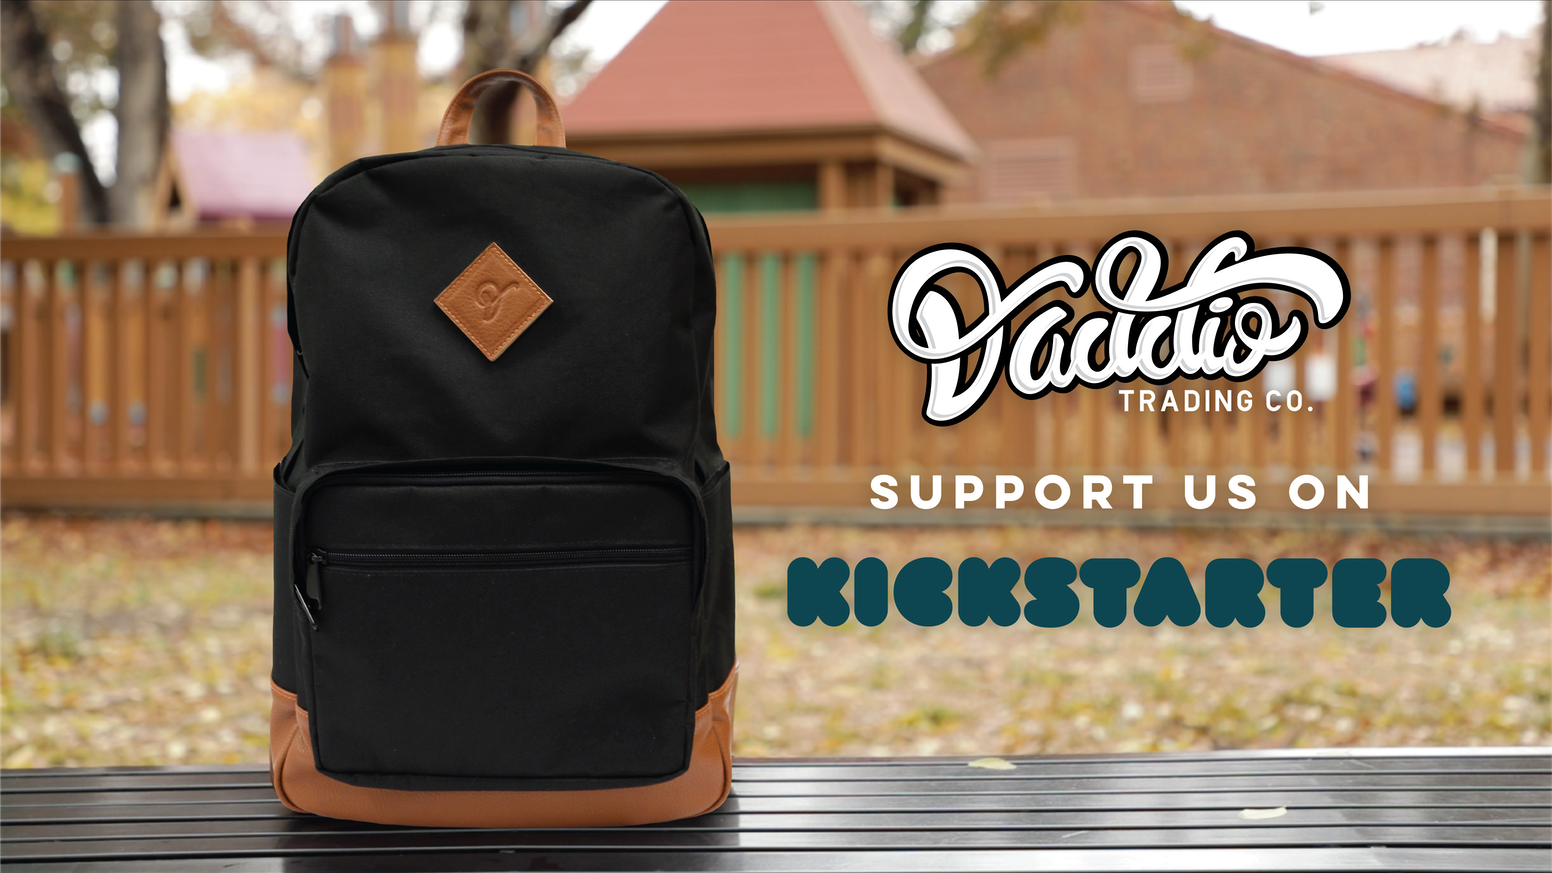 The First Ever Fatherhood Backpack by Daddio Trading Company